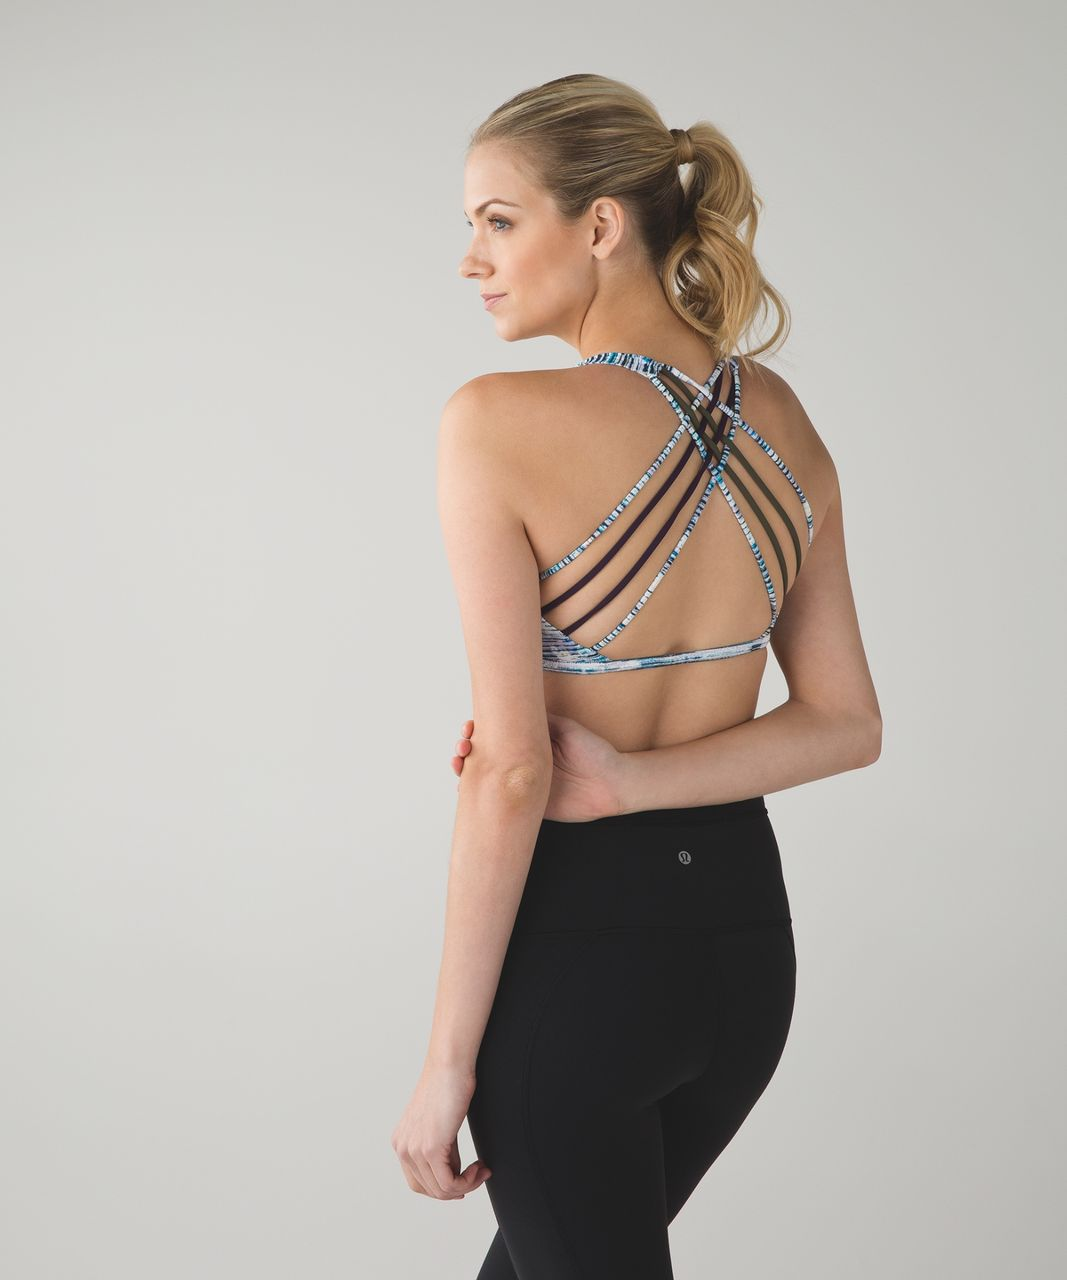 Lululemon Free To Be Bra (Wild) - Blurry Belle Multi / Deep Zinfandel